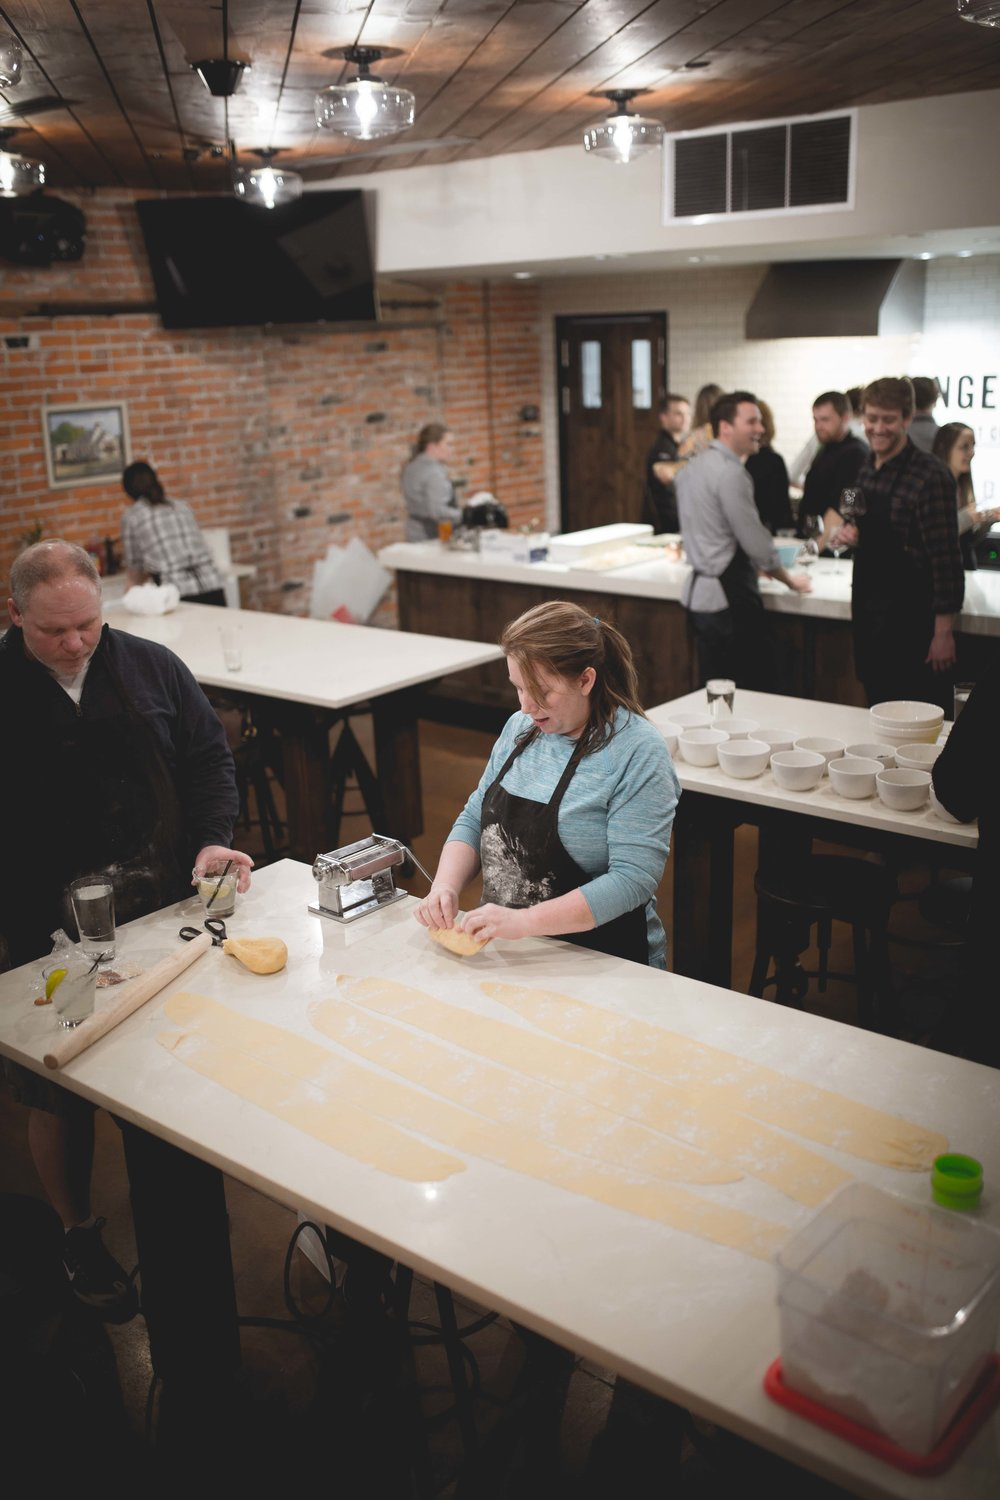 GingerandBaker-JuliyJuan-CookingClass-Feb28-70.jpg